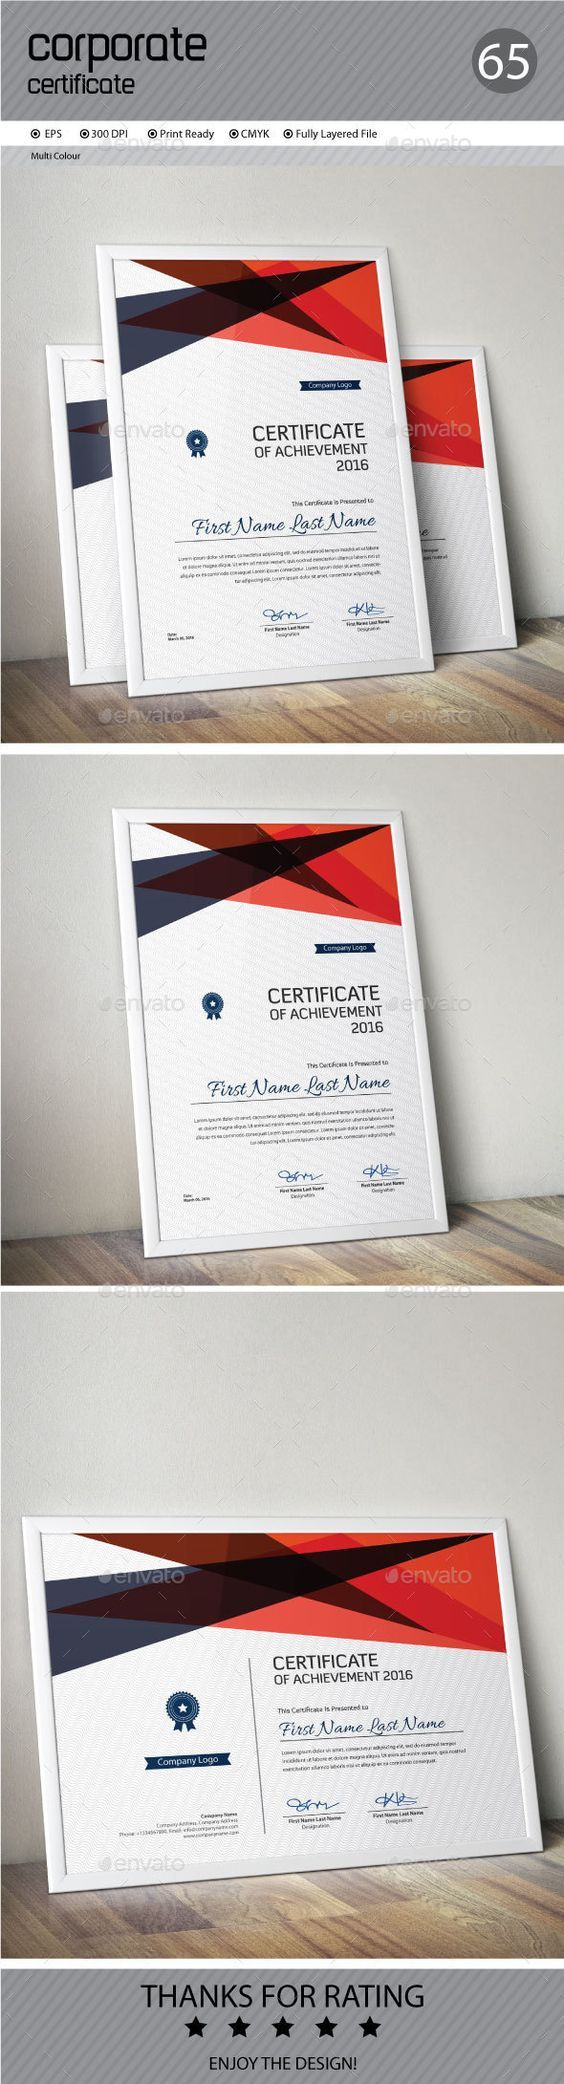 11 best Certificates   Employee Recognition images on Pinterest     Certificate by ConceptFactory Certificate is especially for Corporate or  Professional use  Landscape and Portrait version are available